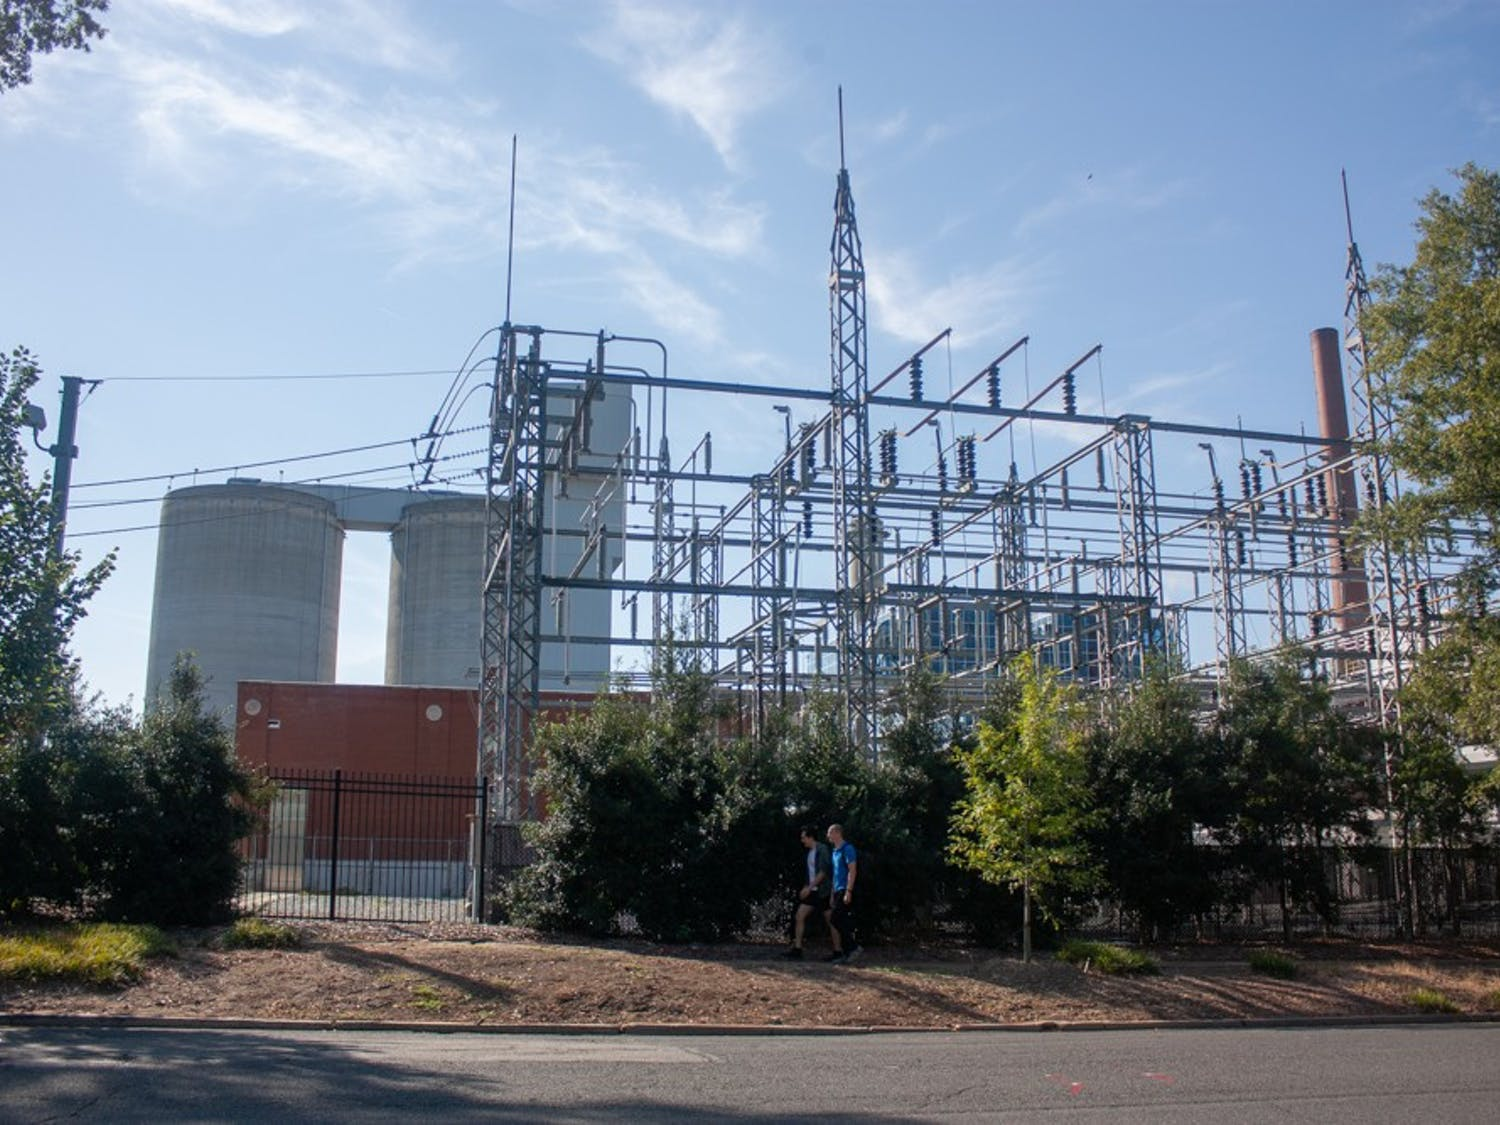 UNC receives energy from the Cogeneration Plant on its campus as well as from Duke Energy.